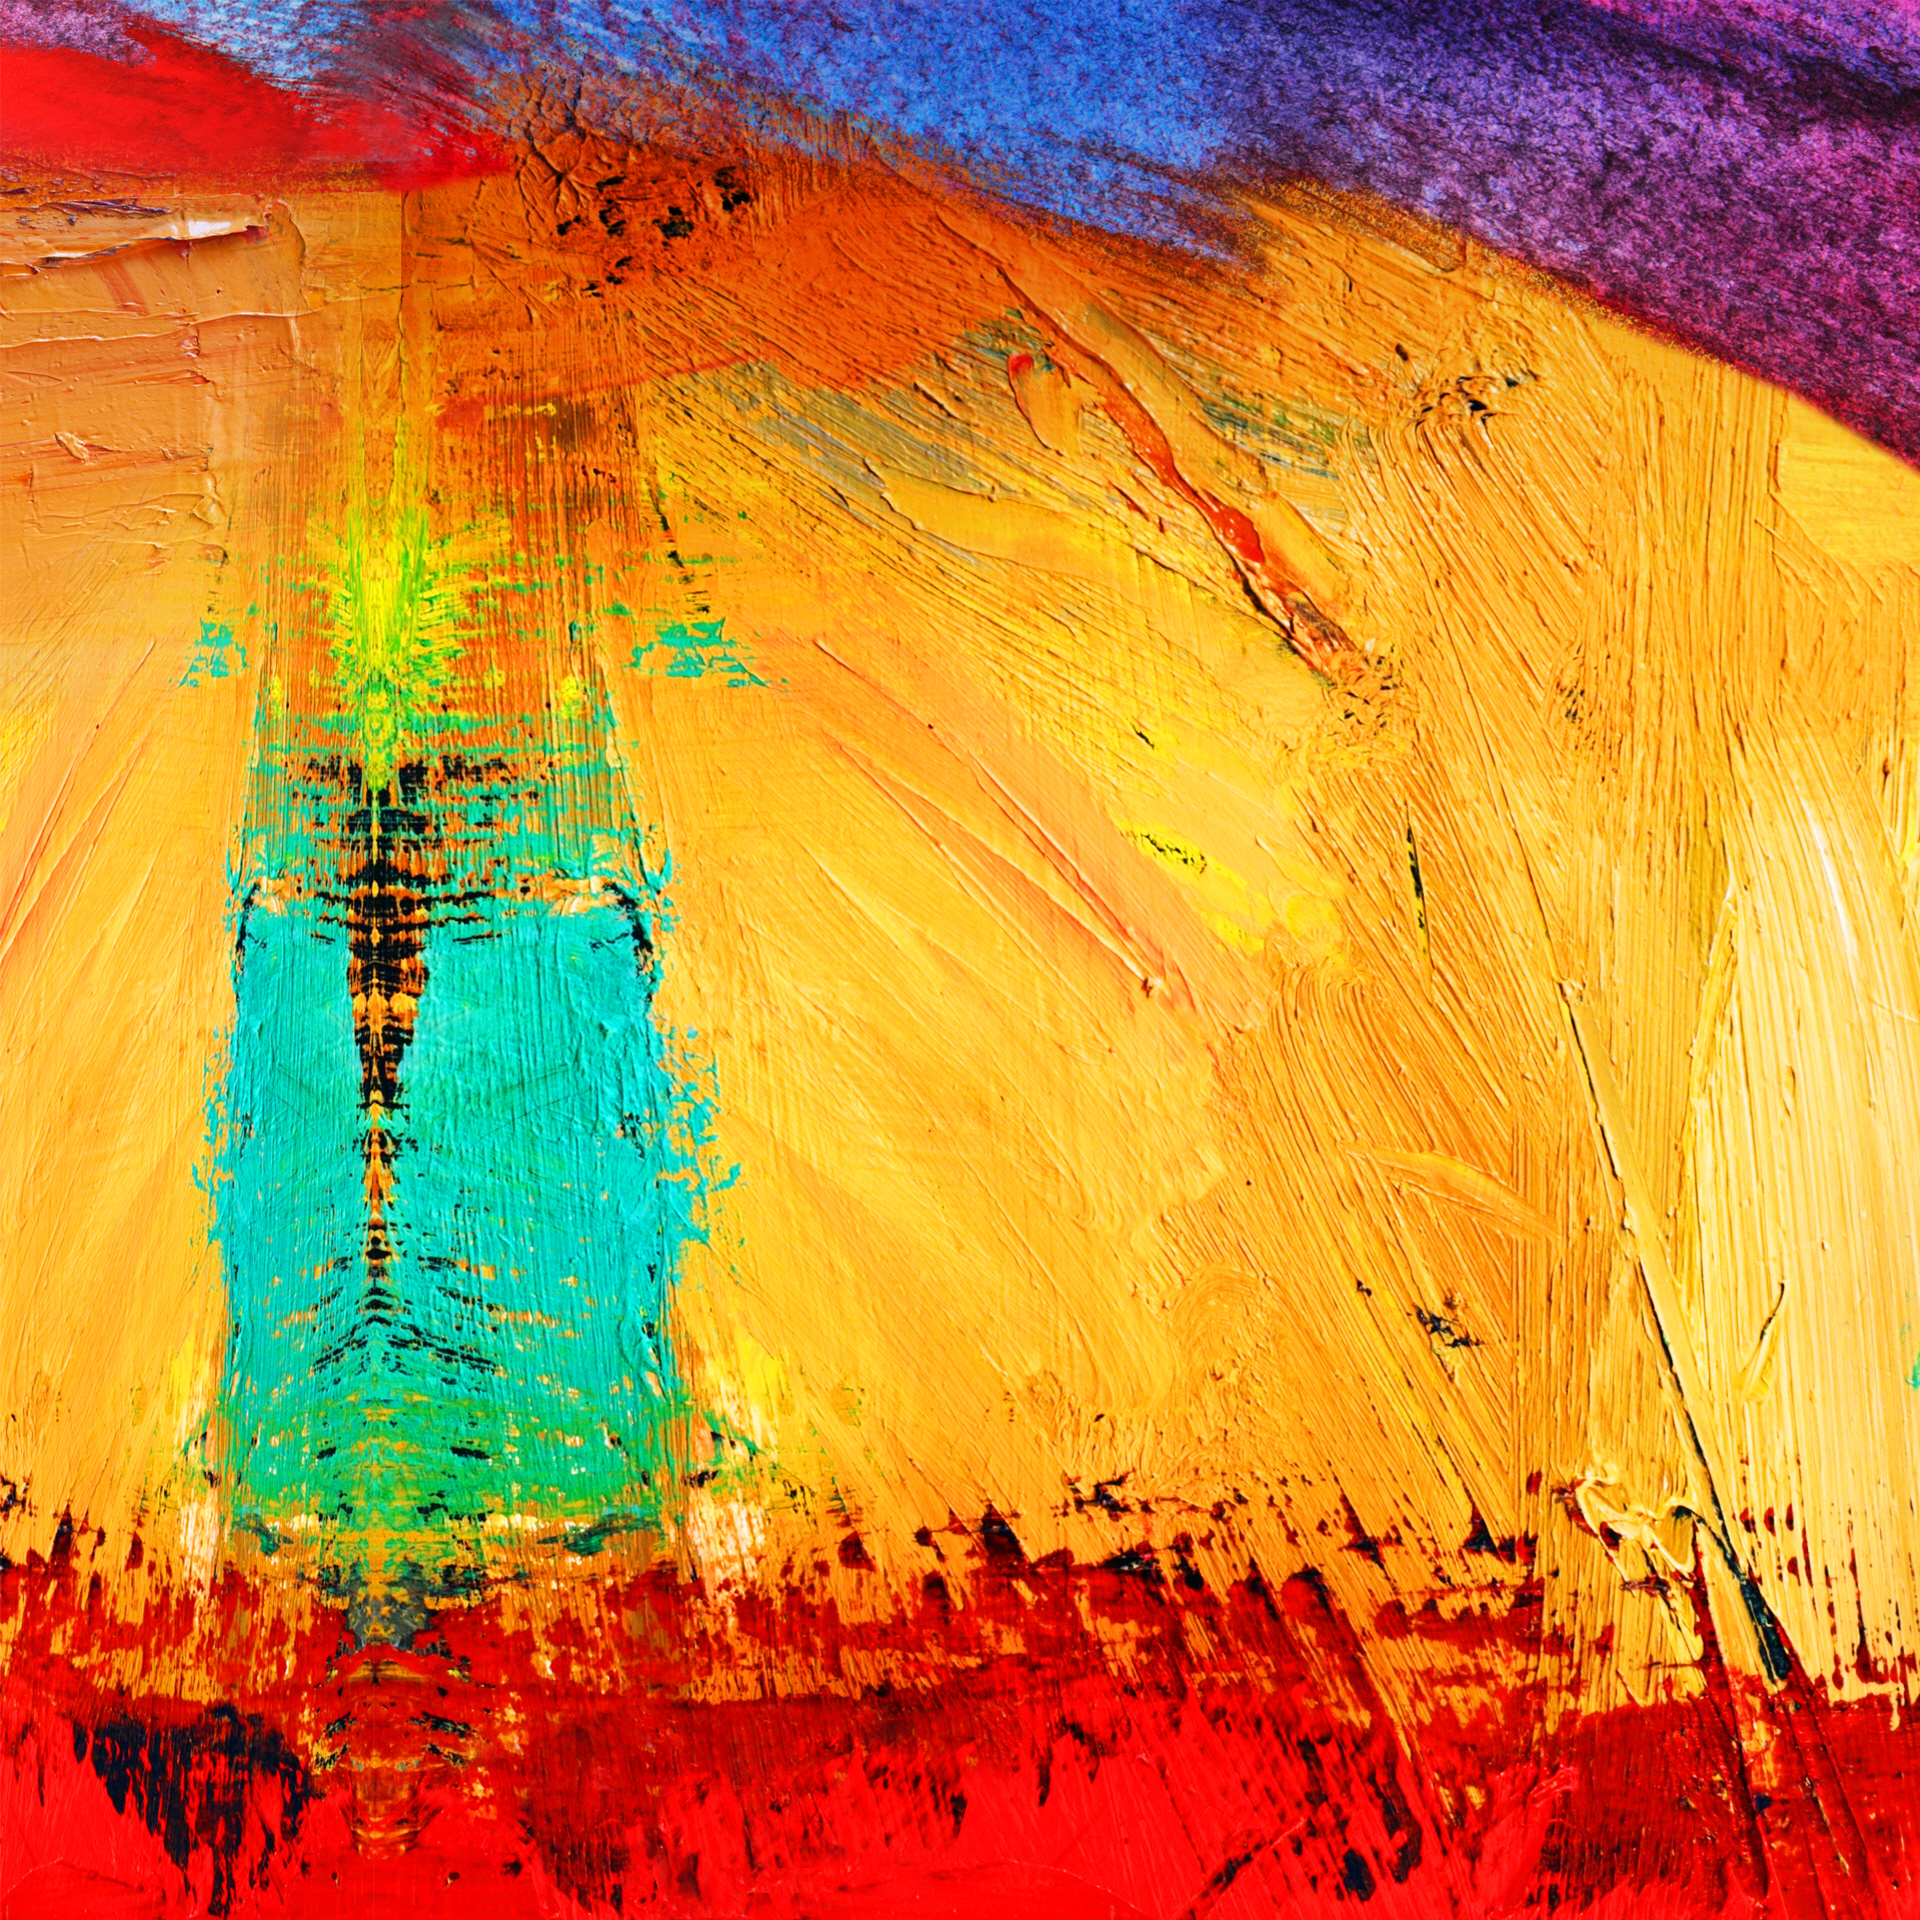 Download Official Samsung Galaxy Note 3 Backgrounds